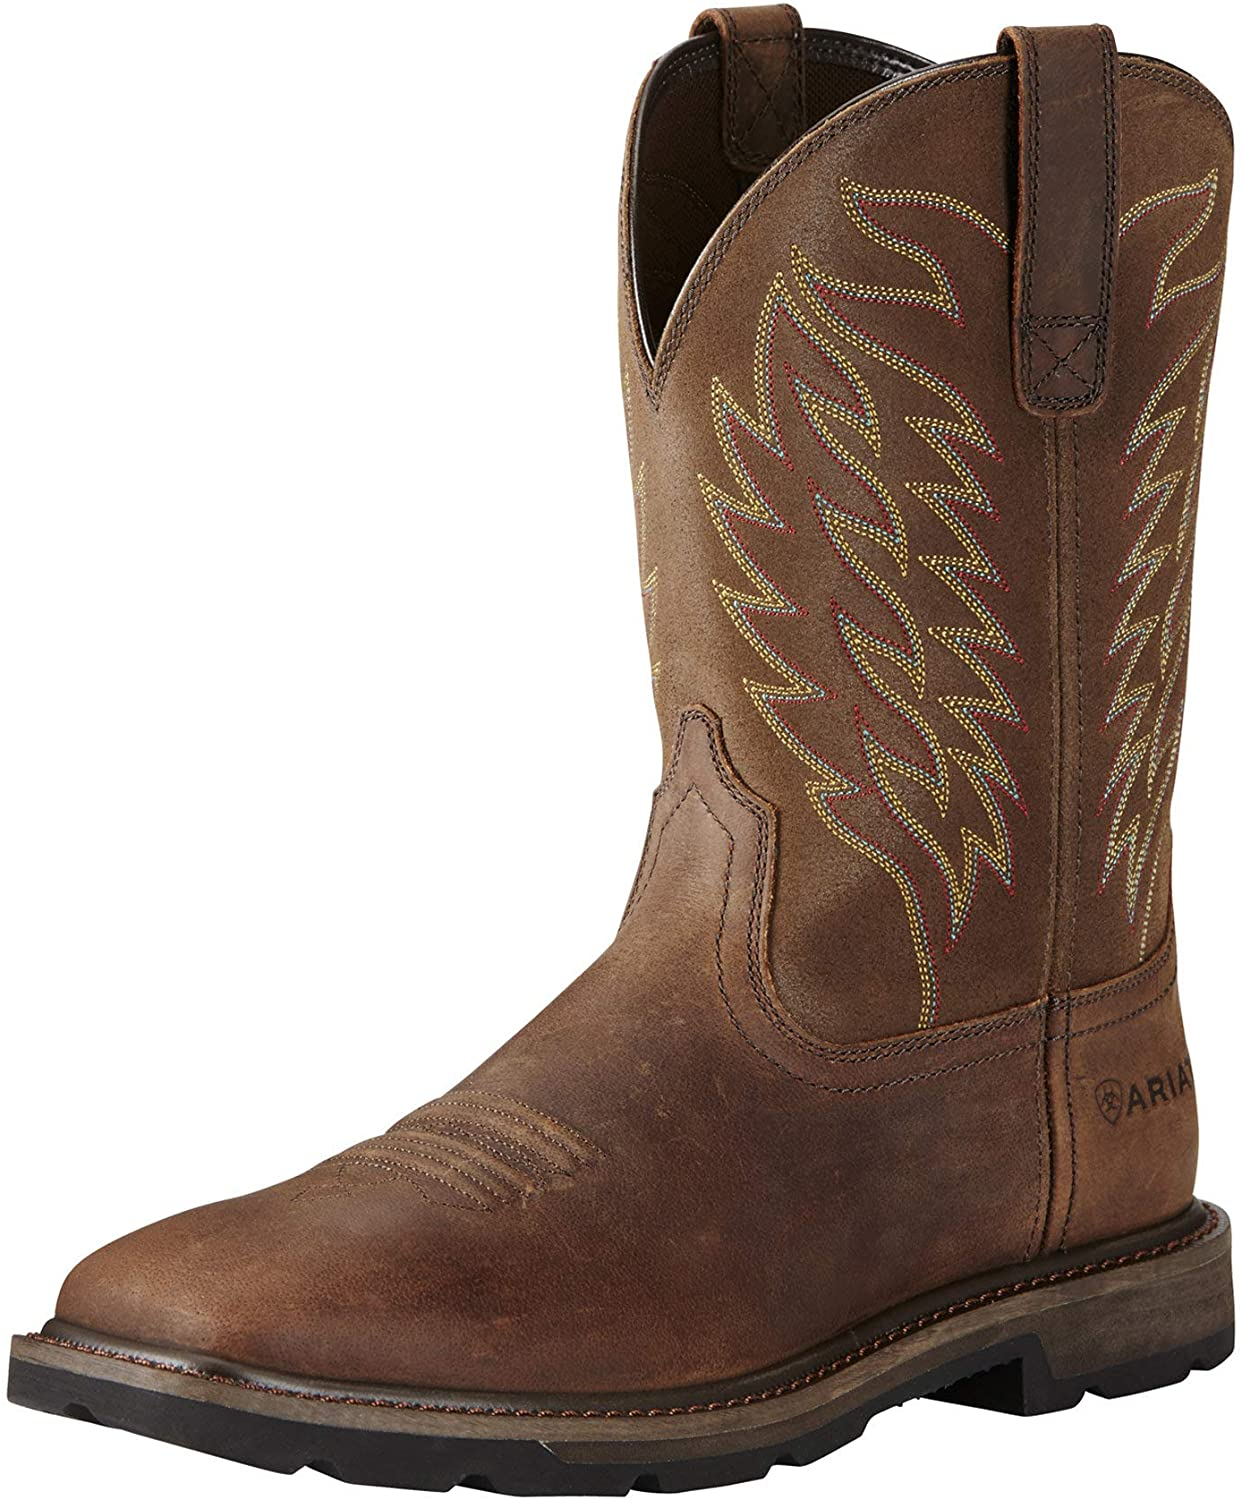 Ariat Mens Groundbreaker Wide Square Toe Workboot